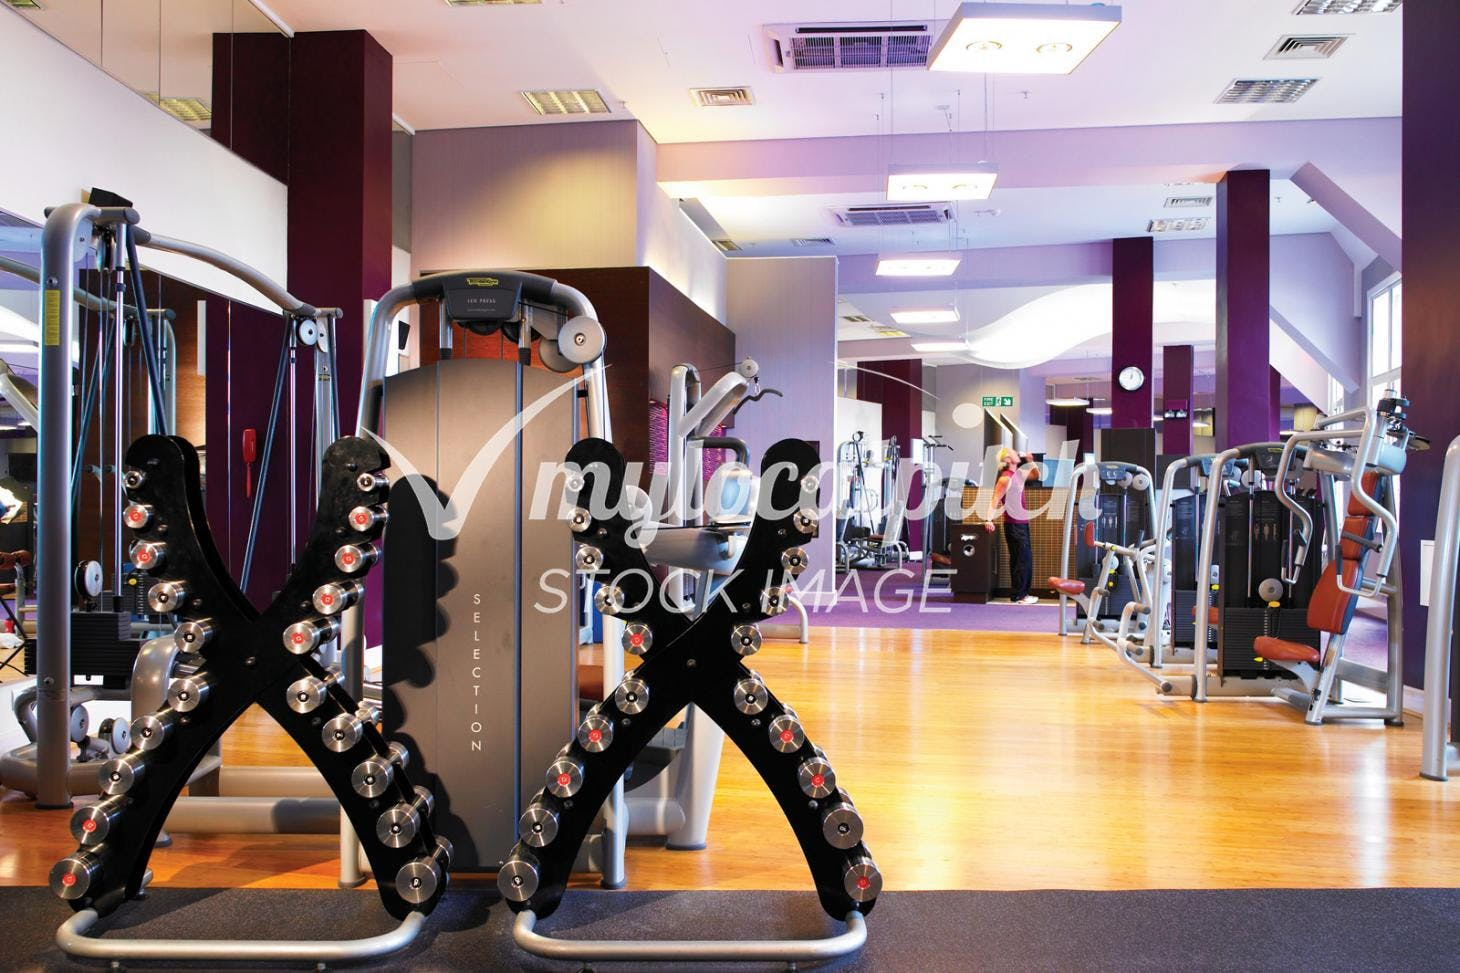 Luton Hoo Hotel Golf and Spa Gym gym